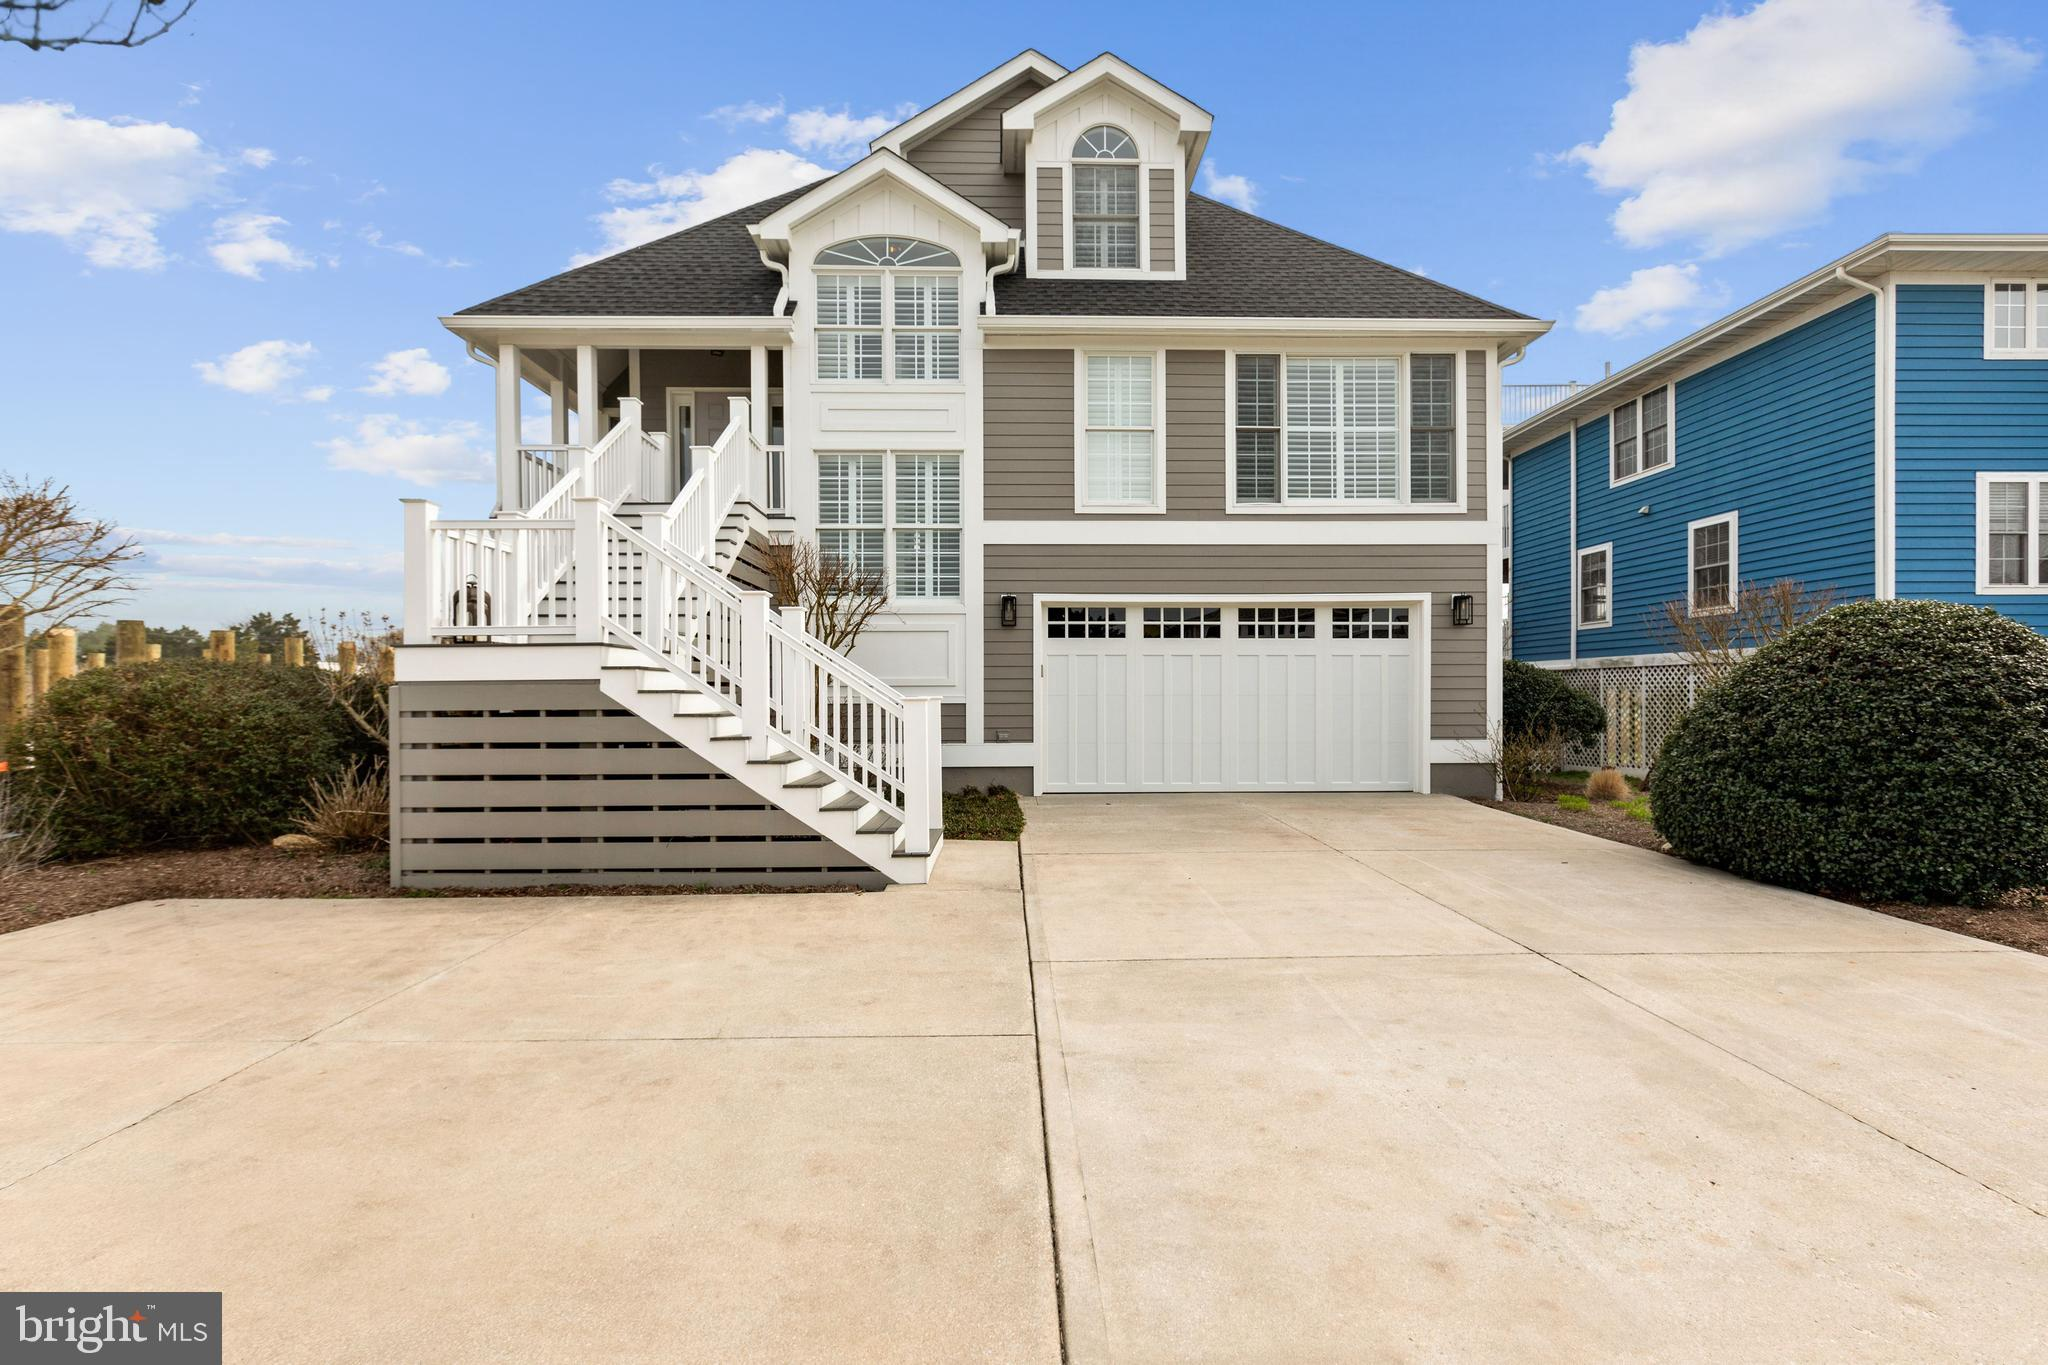 Gorgeous coastal beach home boasting many upgrades in the coveted community of Cape Shores!  Comfortable and sophisticated this home showcases soaring vaulted ceilings, plantation shutters, warm hardwood flooring, expansive palladium windows, high-end stunning lighting fixtures and chandeliers.  Enjoy an open floor plan perfect for entertaining and everyday living.  The cool white color palette throughout is soothing after a hot day in the sun.  A separate dining area and beautiful family room gives access to an elevated enclosed screened porch with serene pond views.  Tap into your inner chef in the gourmet kitchen featuring white Quartz countertops with faint gray veining, a classic subway tile blended with a modern hexagon soft blue/green accent tile, elegant white cabinetry and a generously sized island perfect for those casual meals.  Relax and unwind in the spacious primary bedroom suite complete with a dual sink vanity, a separate tiled shower stall embellished with block glass and a deep soaking tub.  Two additional bedrooms, one with atrium doors leading to an updated composite deck, and a full bath complete the upper level sleeping quarters.    The lower level has a fourth bedroom, a generously sized great room, full bath, laundry and access to the 2-car garage.  This home has been meticulously maintained and updated:   All New Roof/Gutter/Downspouts, Hardi-plank Siding, Exterior Maintenance Free Decking on the Front Stairs/Porch and Upper Level Deck, Garage Door, Porch Ceiling and Screening and a new Outside Shower.  As a resident, you will be just steps to the community pool and close to a private beach, fishing pier and tennis courts.  An easy bike ride or drive to the Cape Henlopen State Park and downtown Lewes boutique shops and fine restaurants.  Don't miss this opportunity to Live At The Beach!